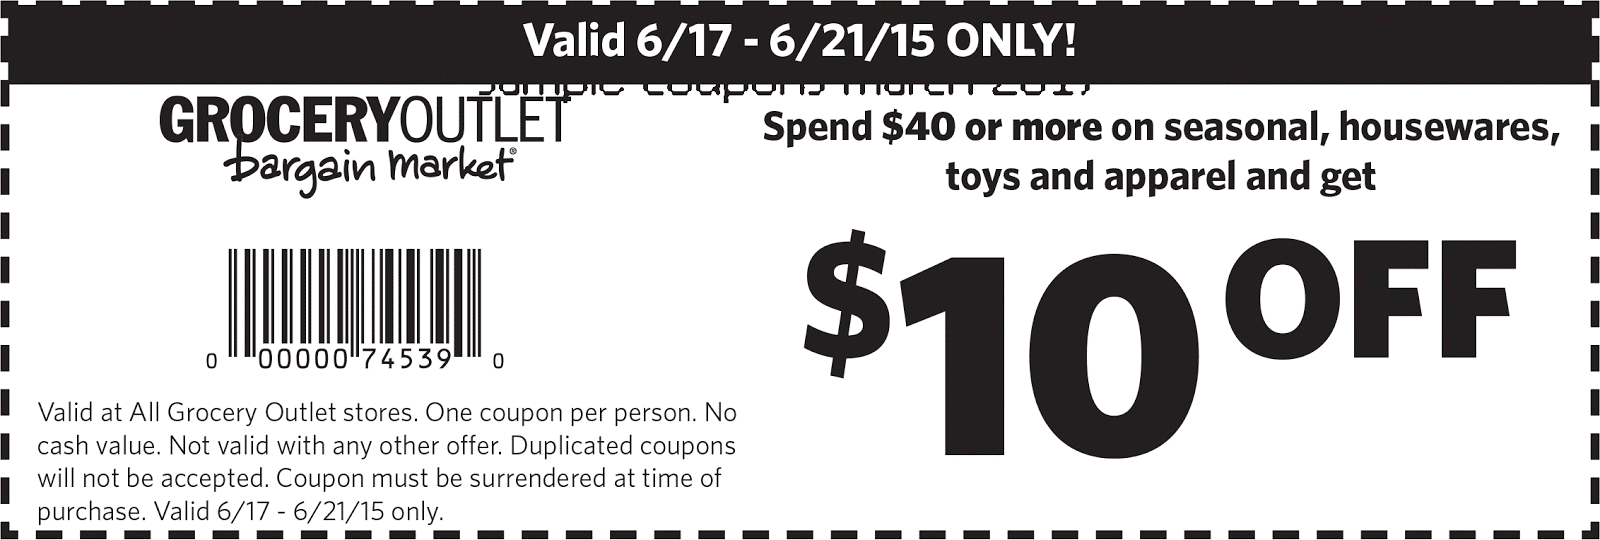 Sunday coupons march 30 2018